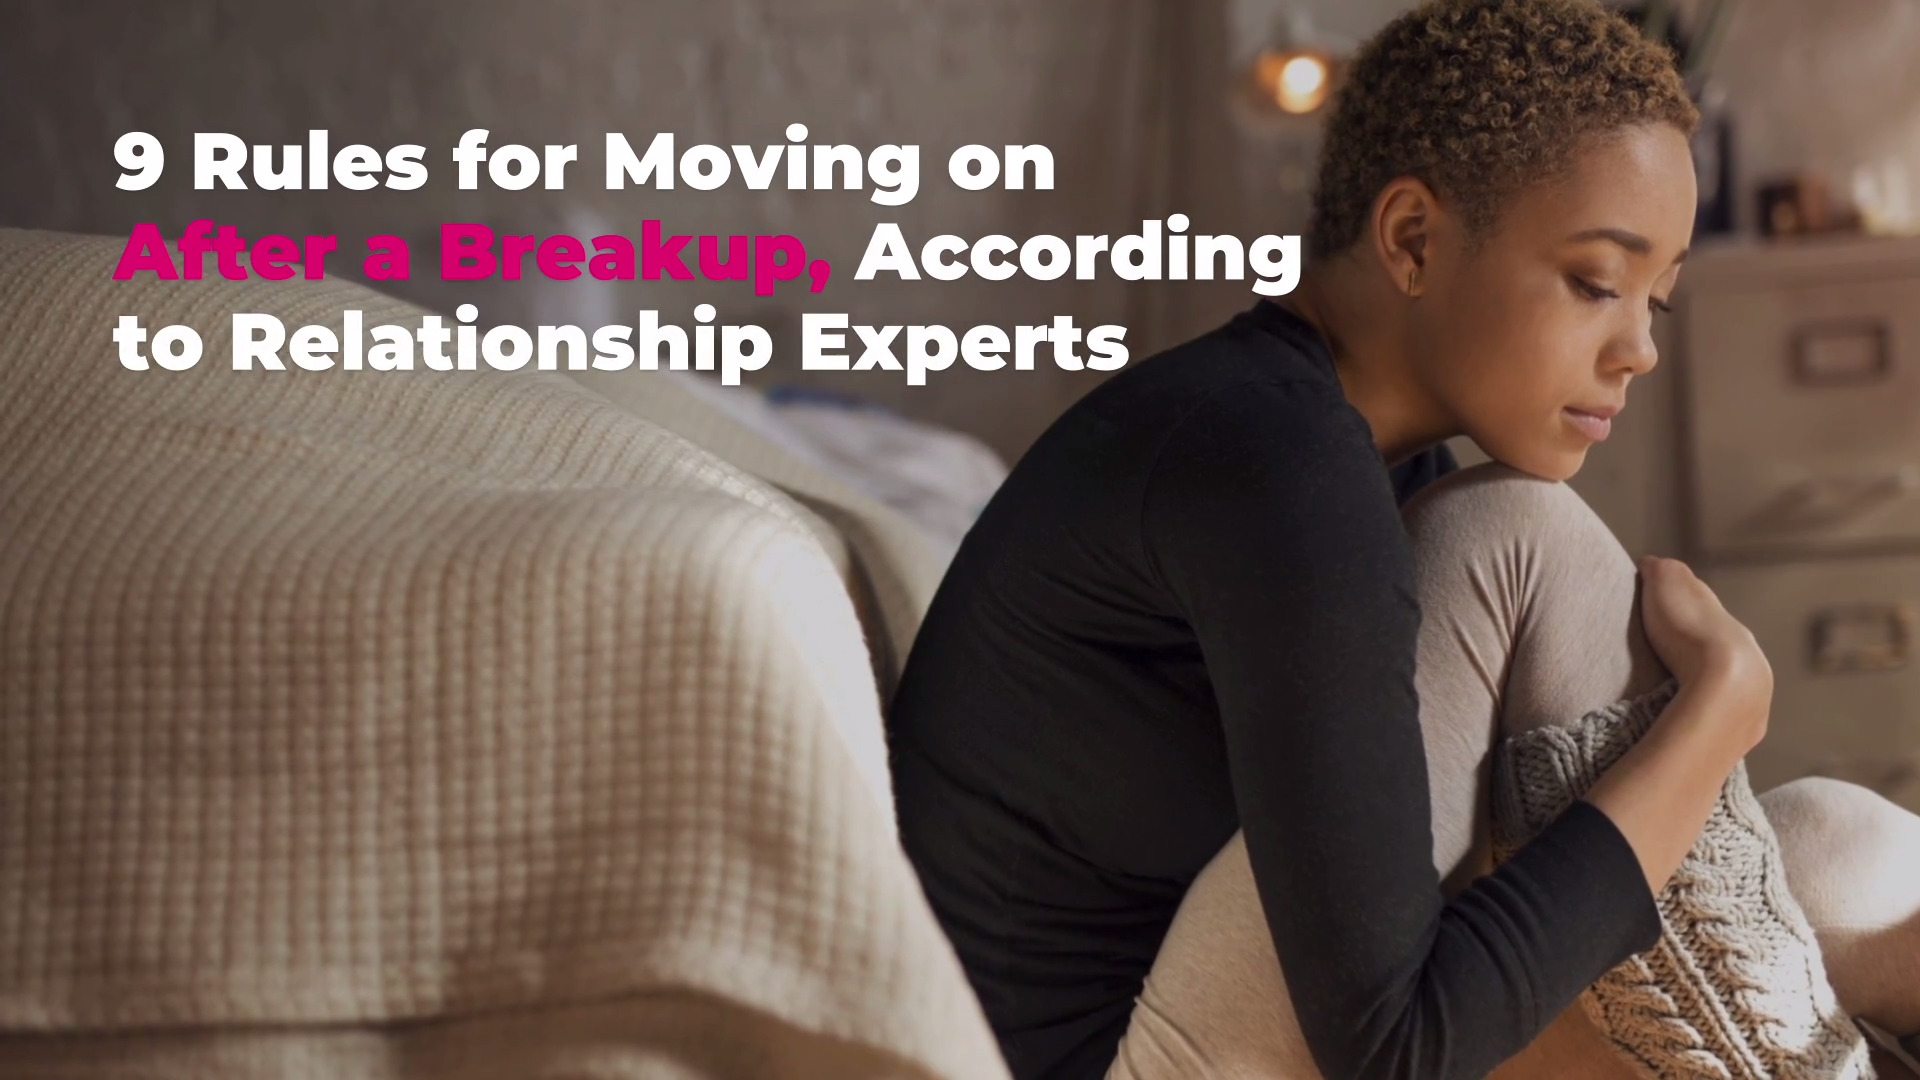 How To Move On After A Breakup According To Relationship Experts Real Simple